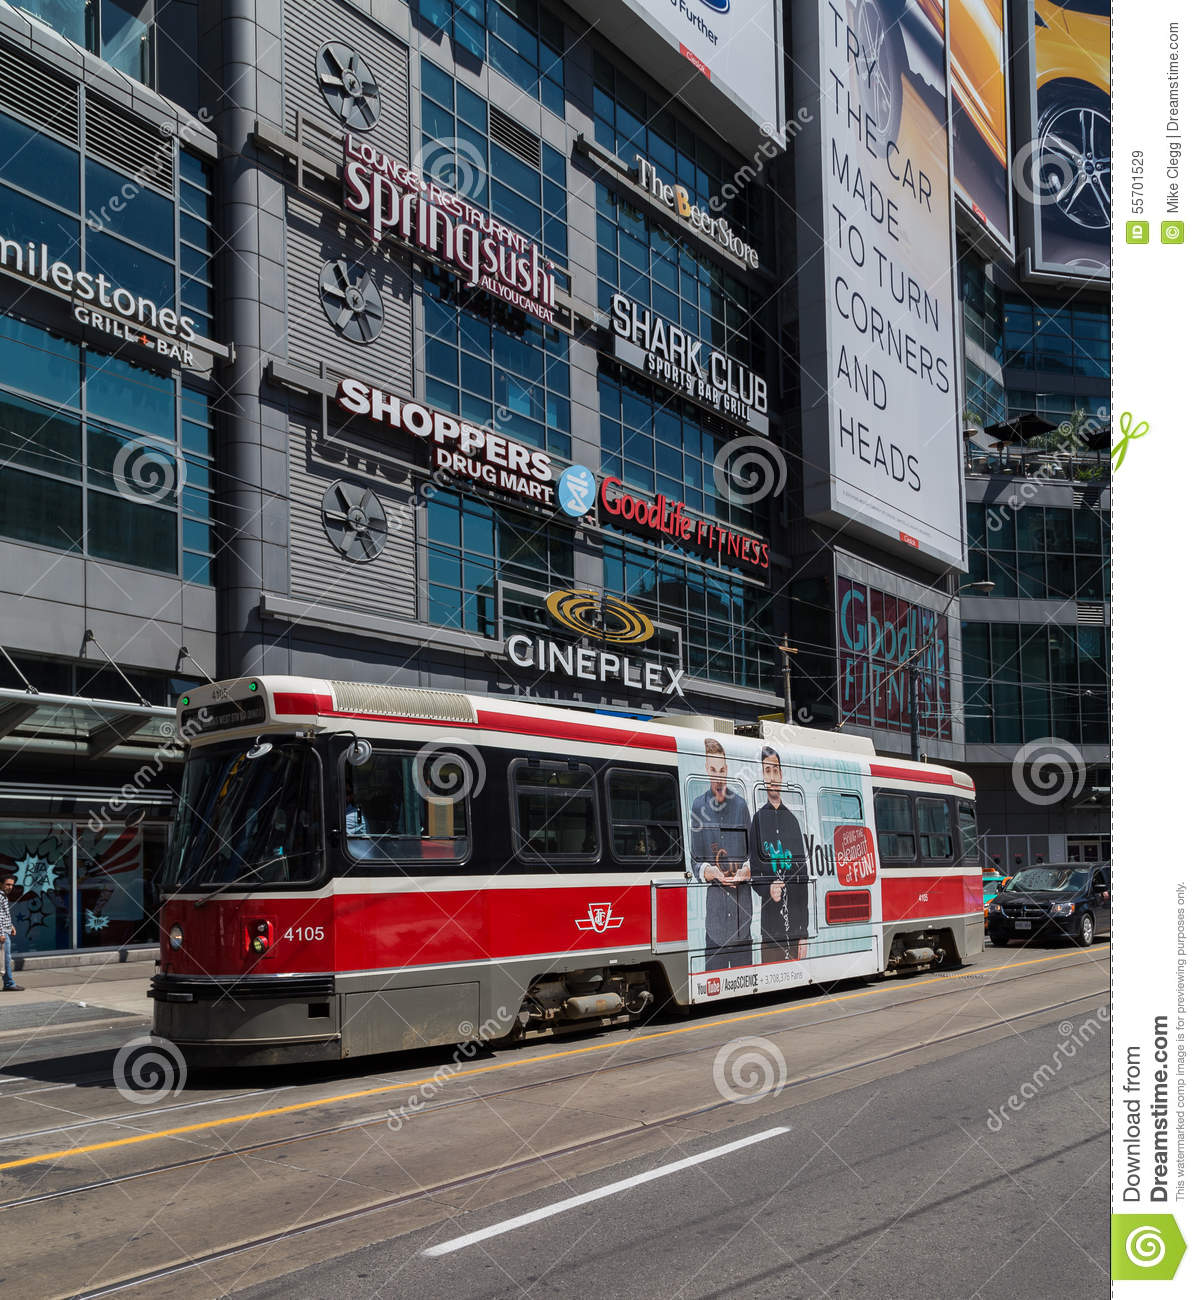 Ladys Yonge And Dating Car Dundas In